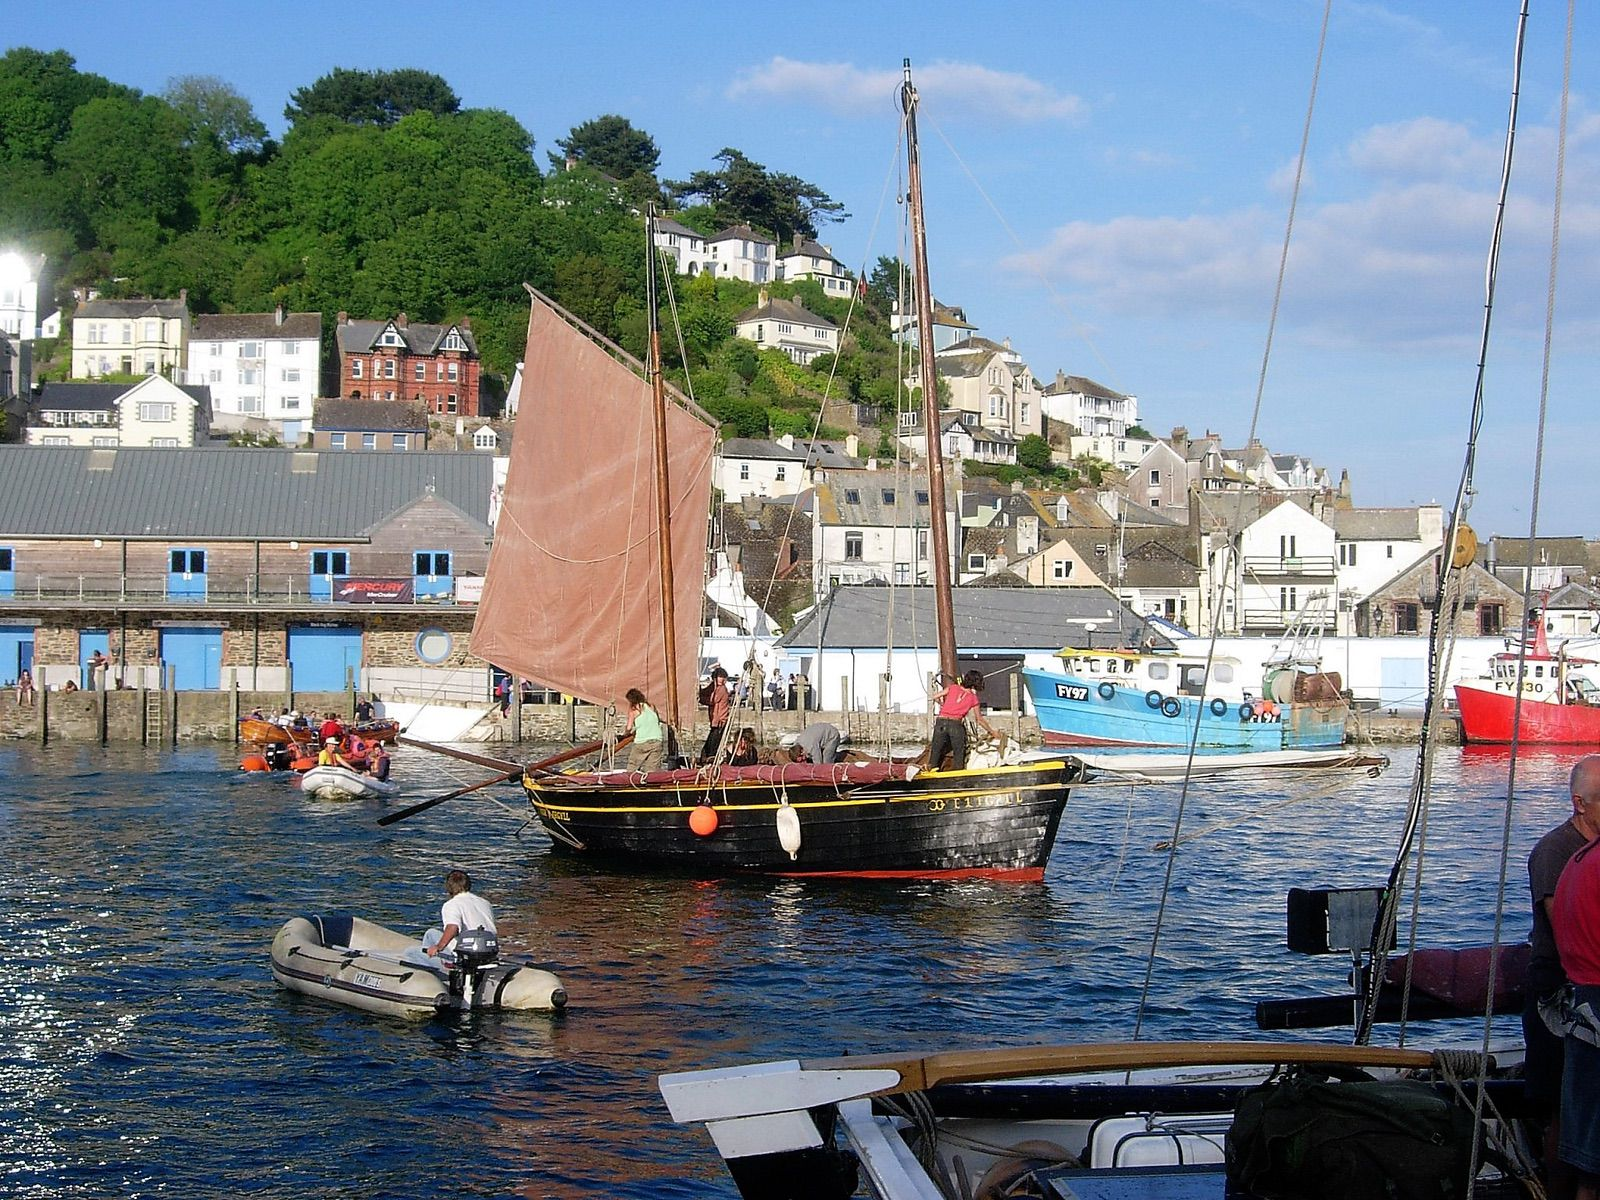 Traditional Cornish lugger sailing vessel on Looe River